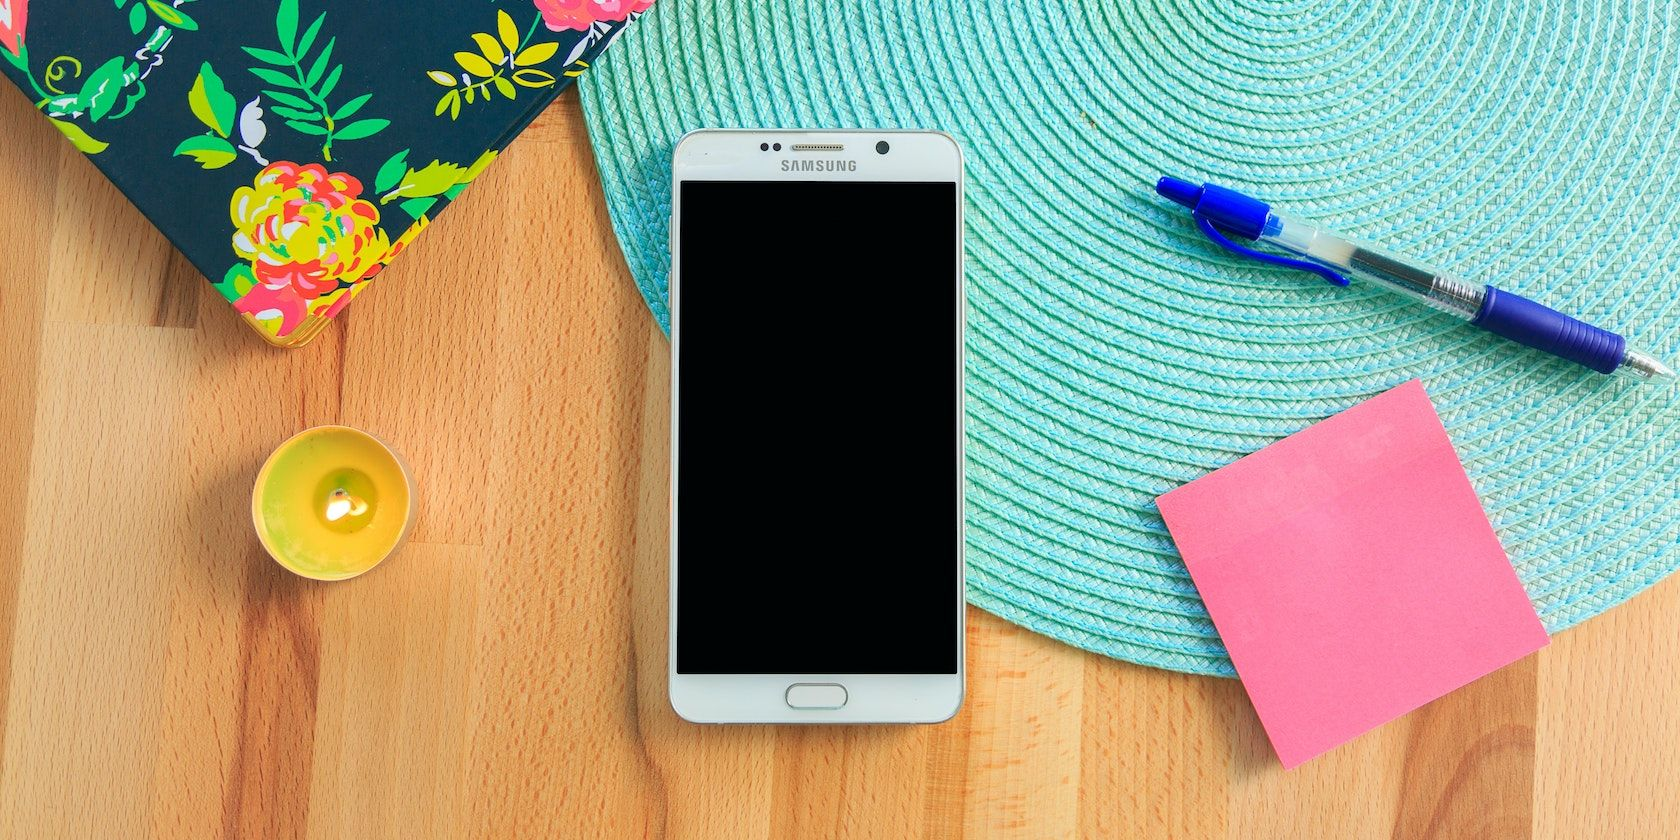 How to Find and Delete Duplicate Files on a Samsung Galaxy